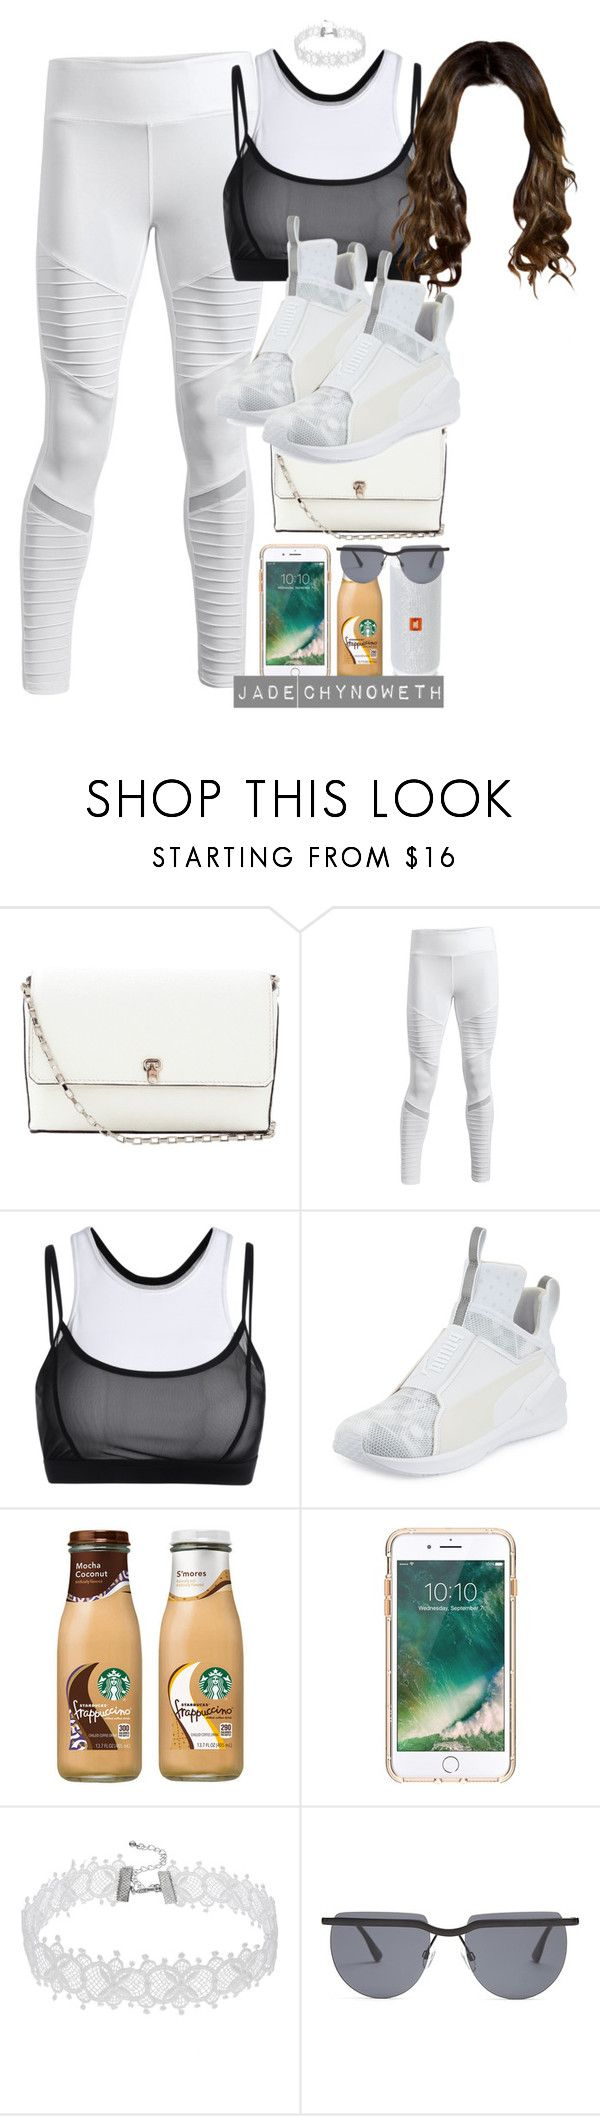 """""""Yo Gotti Ft. Nicki Minaj - Rake It Up (Jade Choreography)"""" by icanthandlethis ❤ liked on Polyvore featuring Valextra, Puma, JBL, Griffin and Le Specs"""